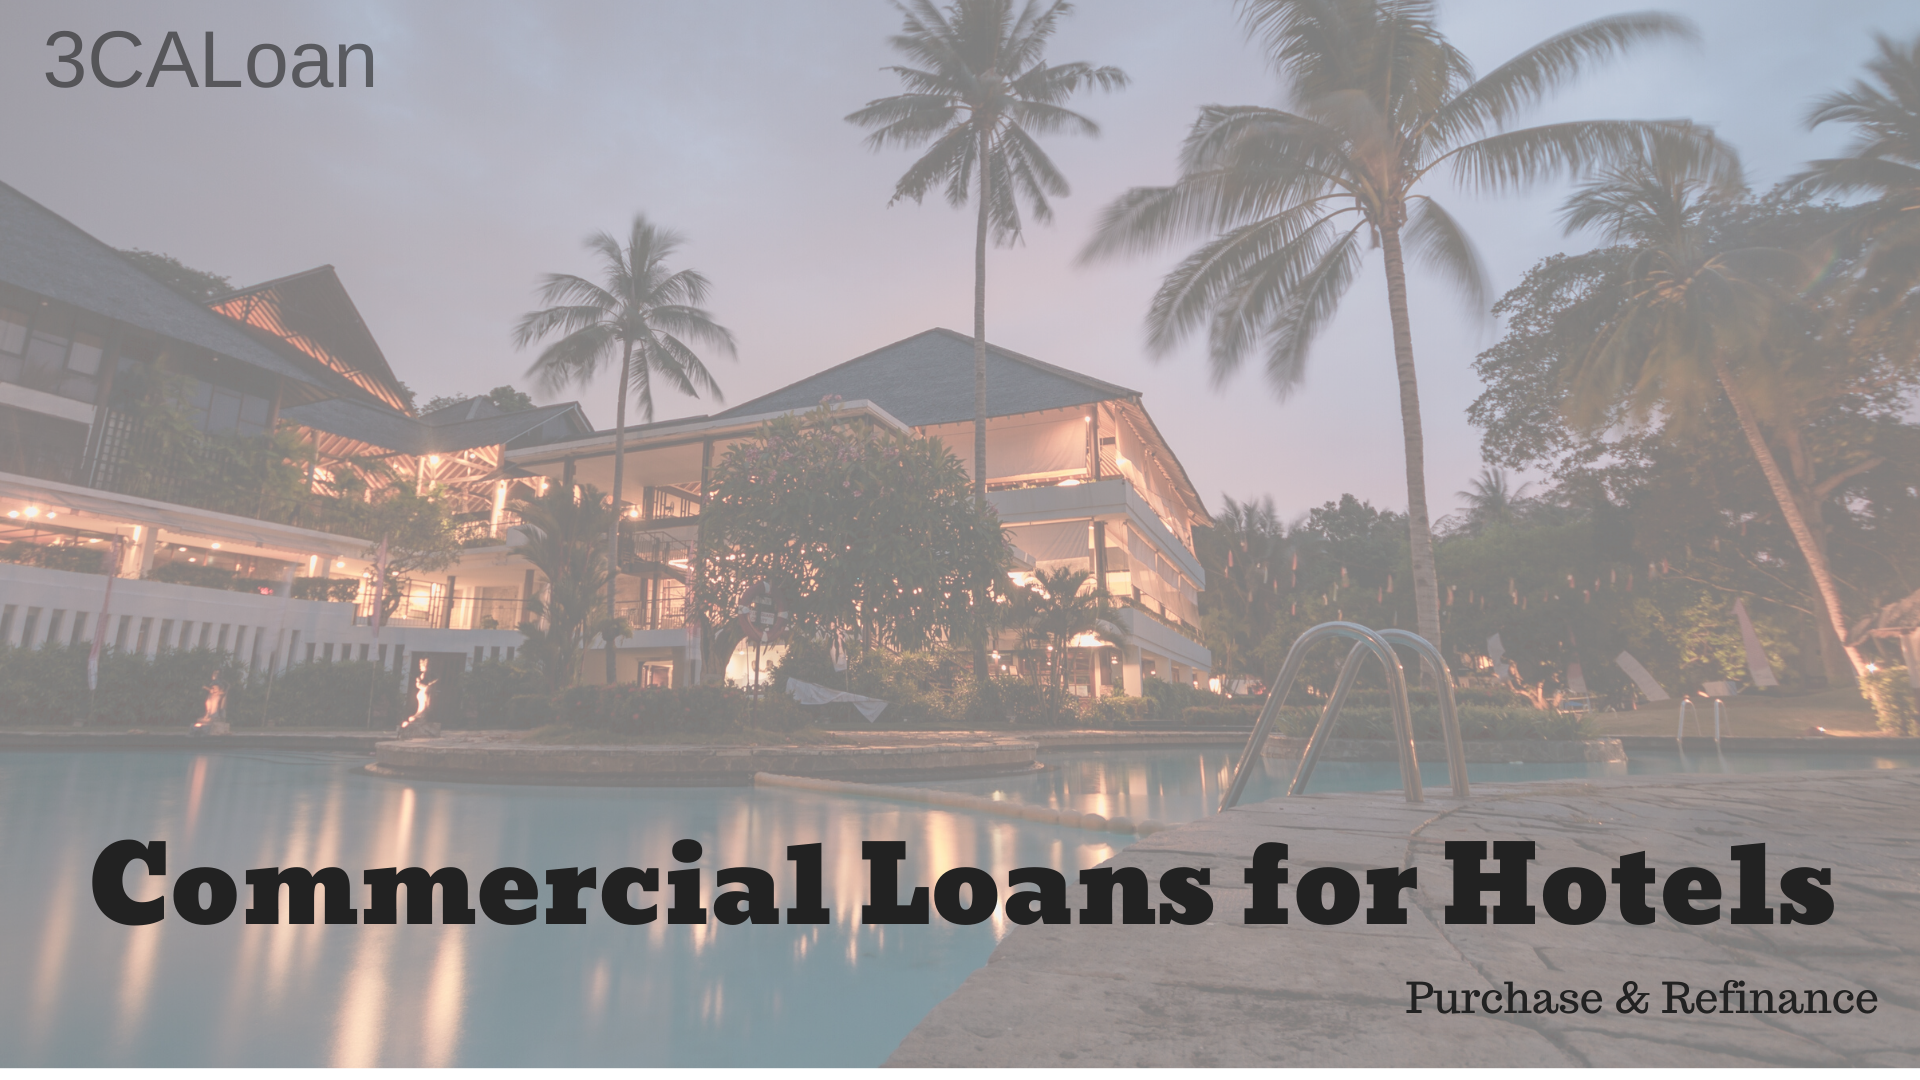 Commercial Hotel loans for Purchase & Refinance